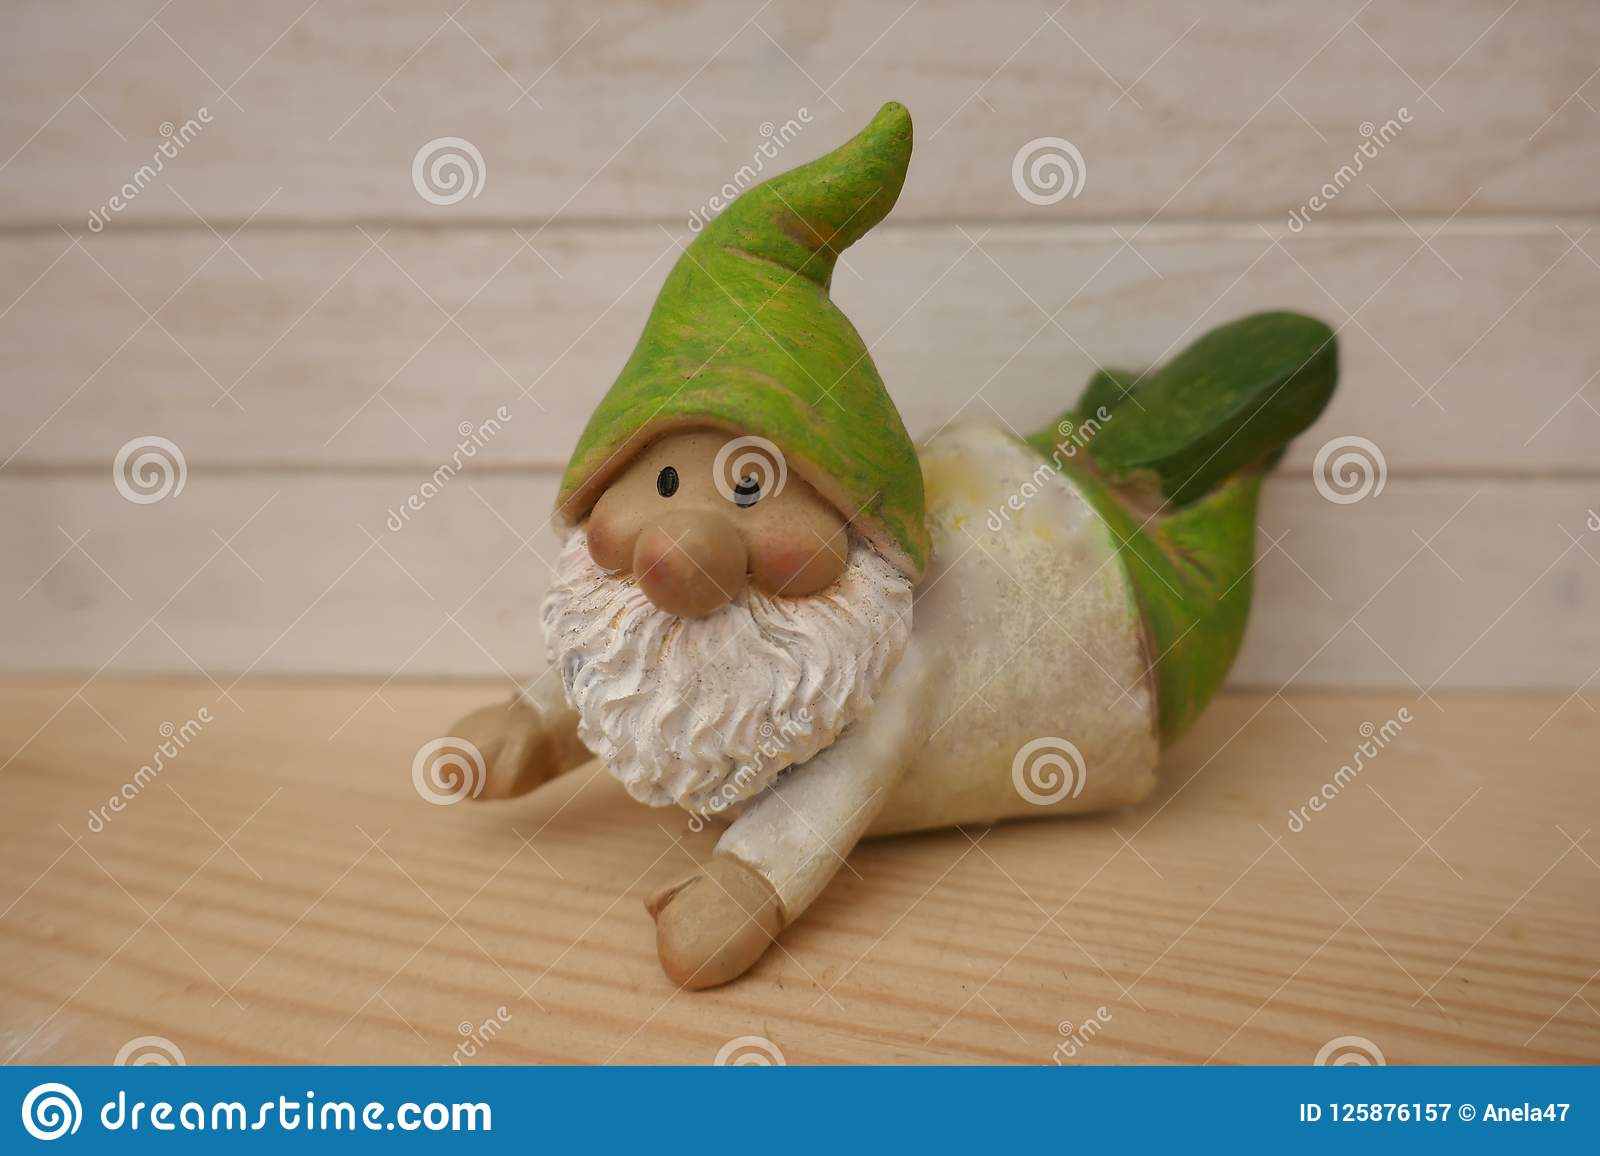 Little Garden Gnome With A Green Hat And White Beard Lies On A ...